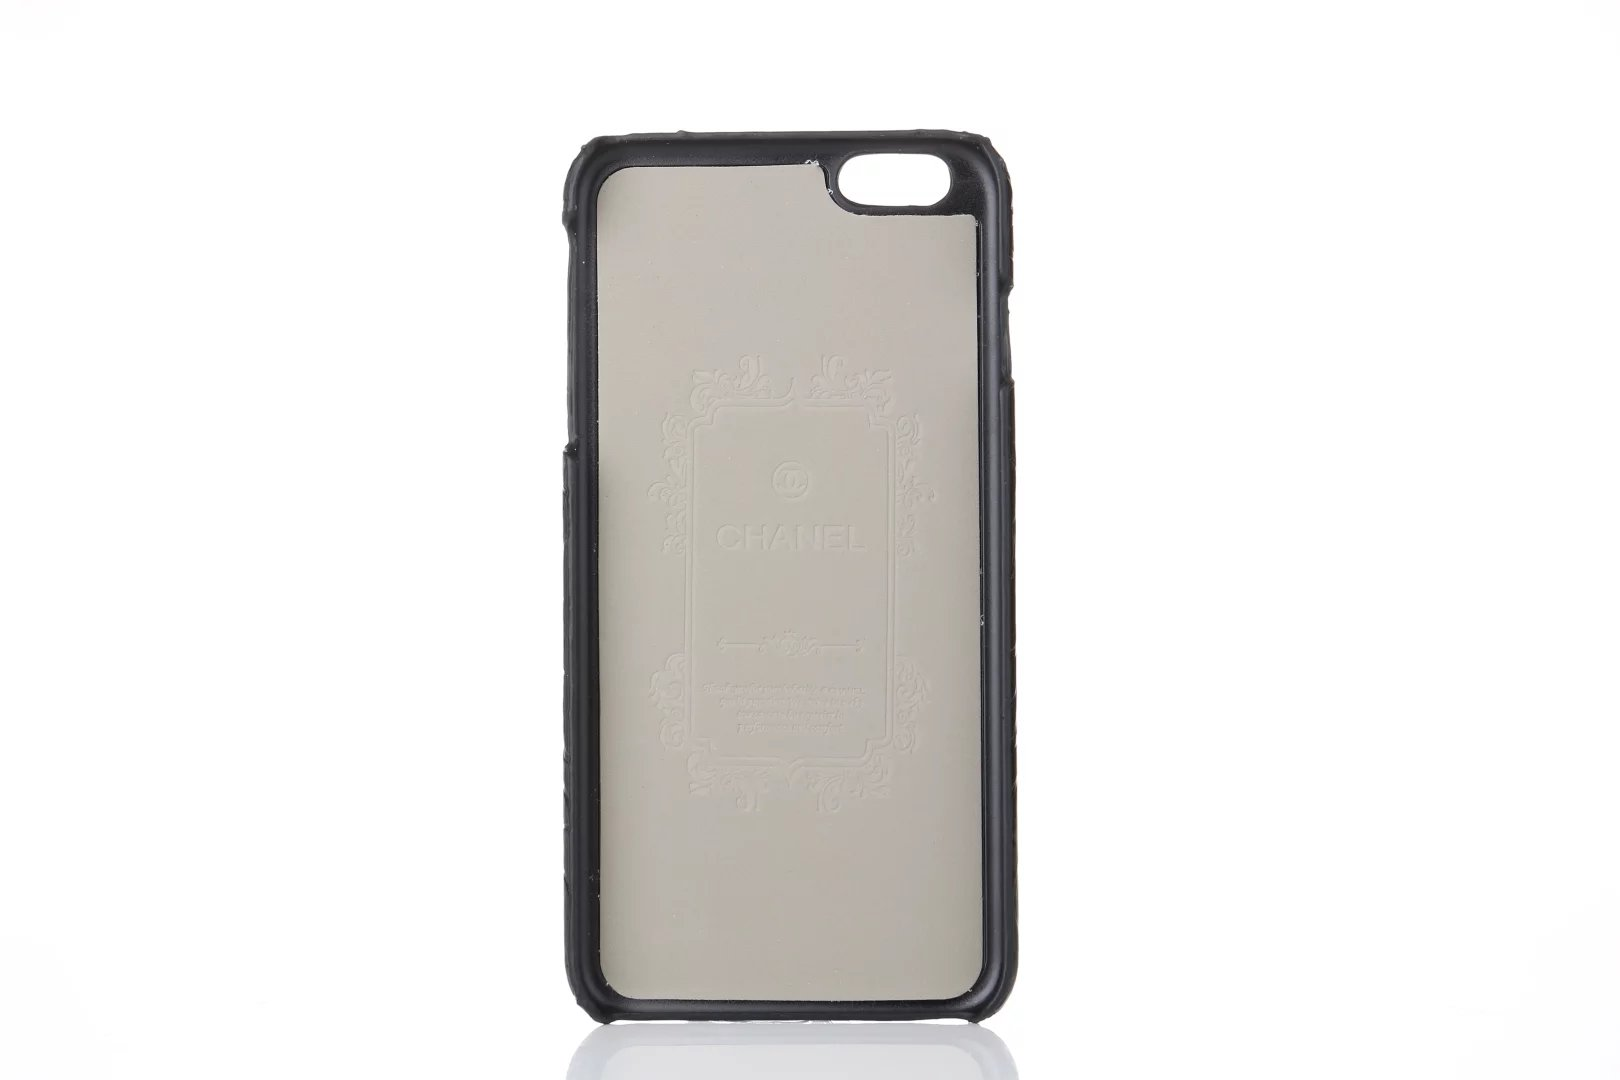 cases iphone 7 social 7 iphone cases fashion iphone7 case apple new iphone rumors 7 phone covers protective covers for iphone 7 custom iphone 7 skins i7 case phonecases